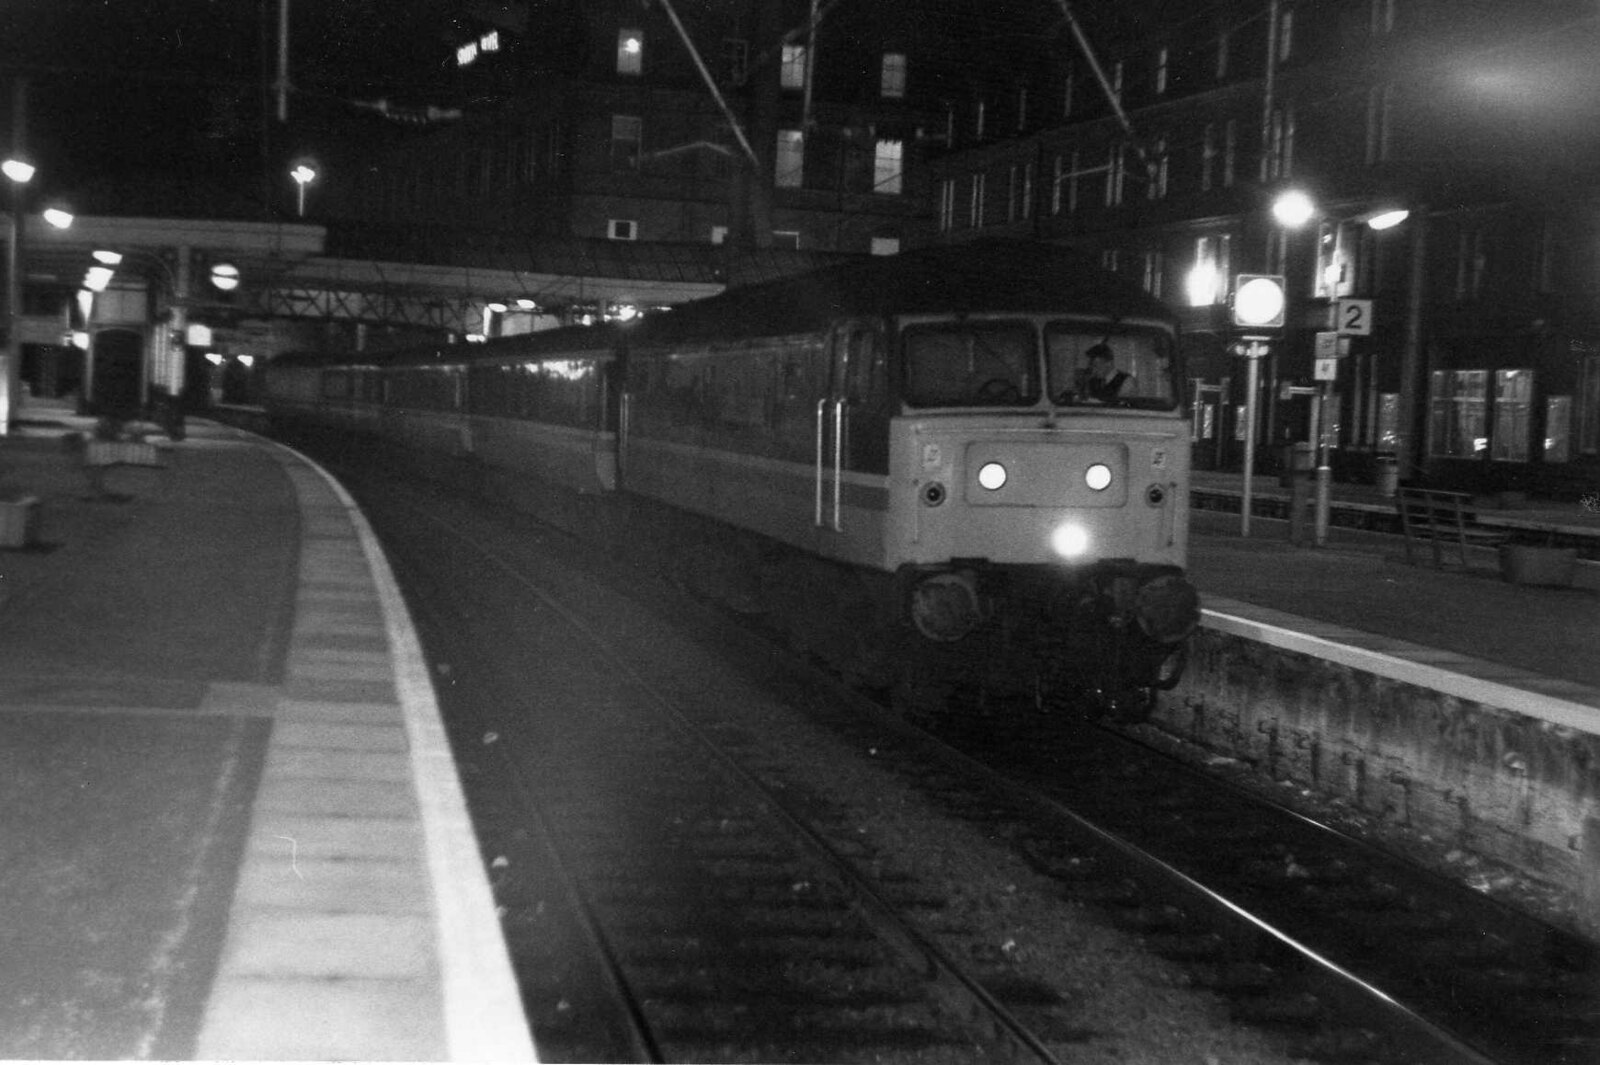 Night train from Stranraer to London in Ayr Station